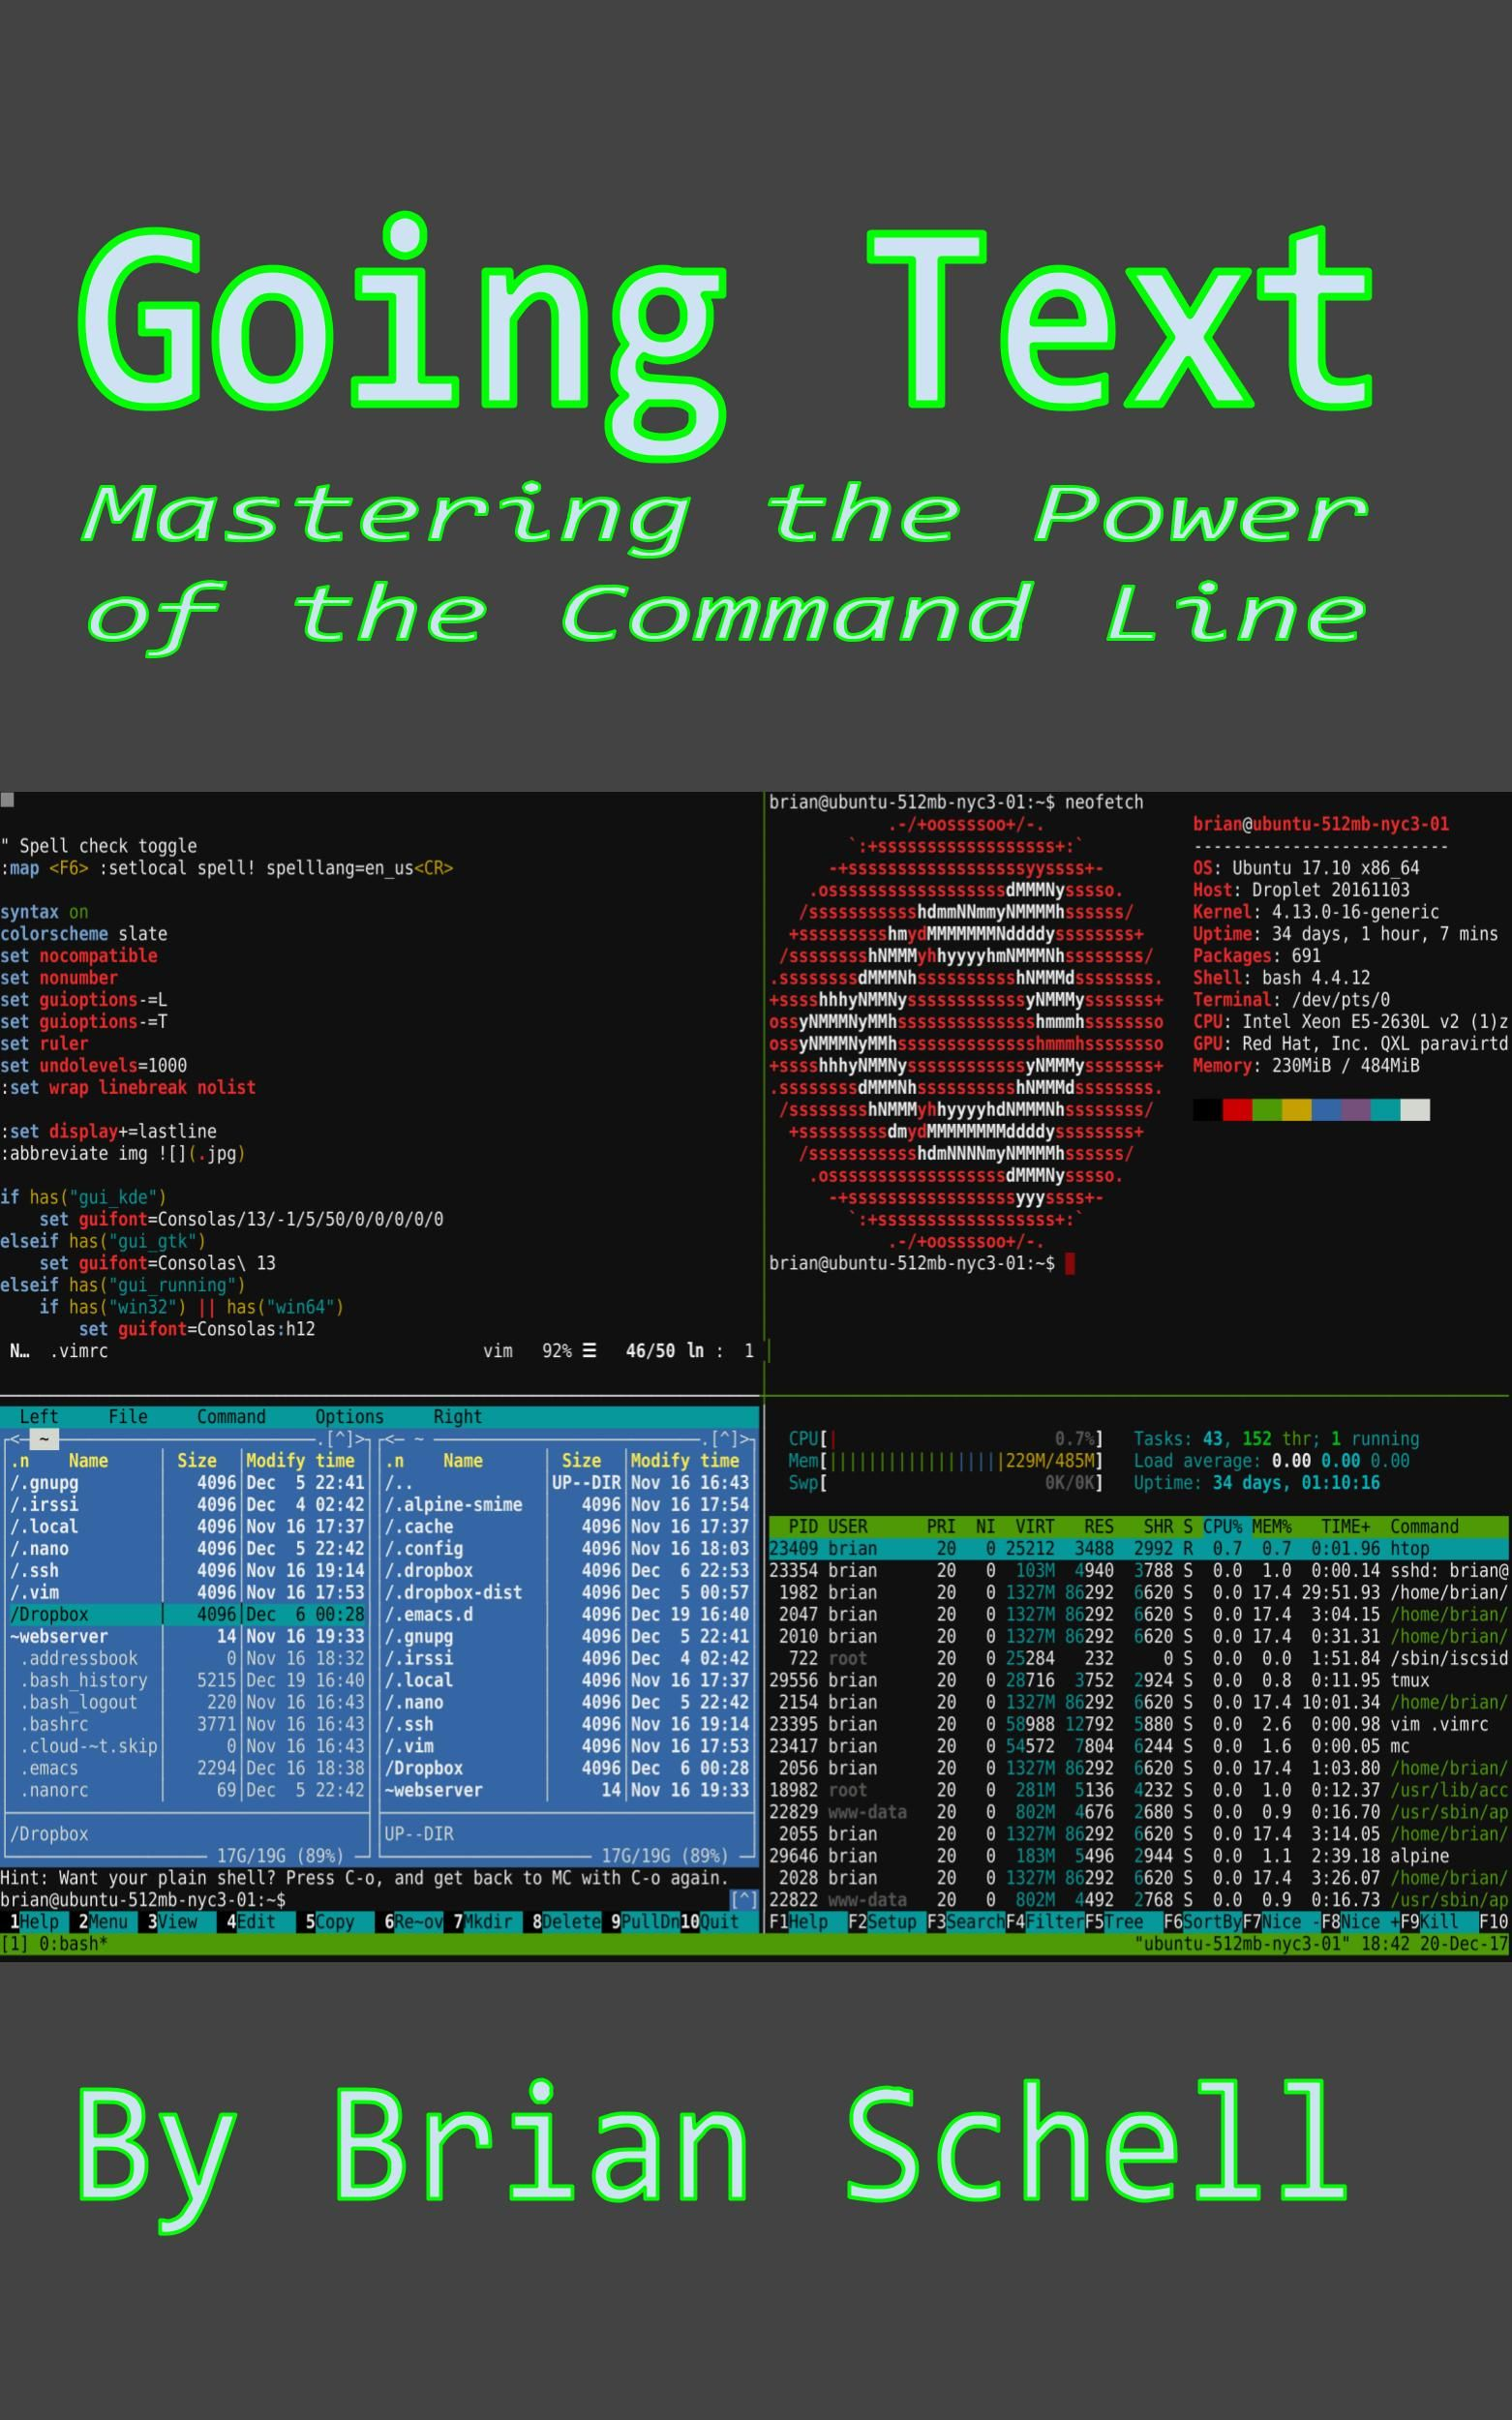 Going Text Mastering the Power of the Command Line